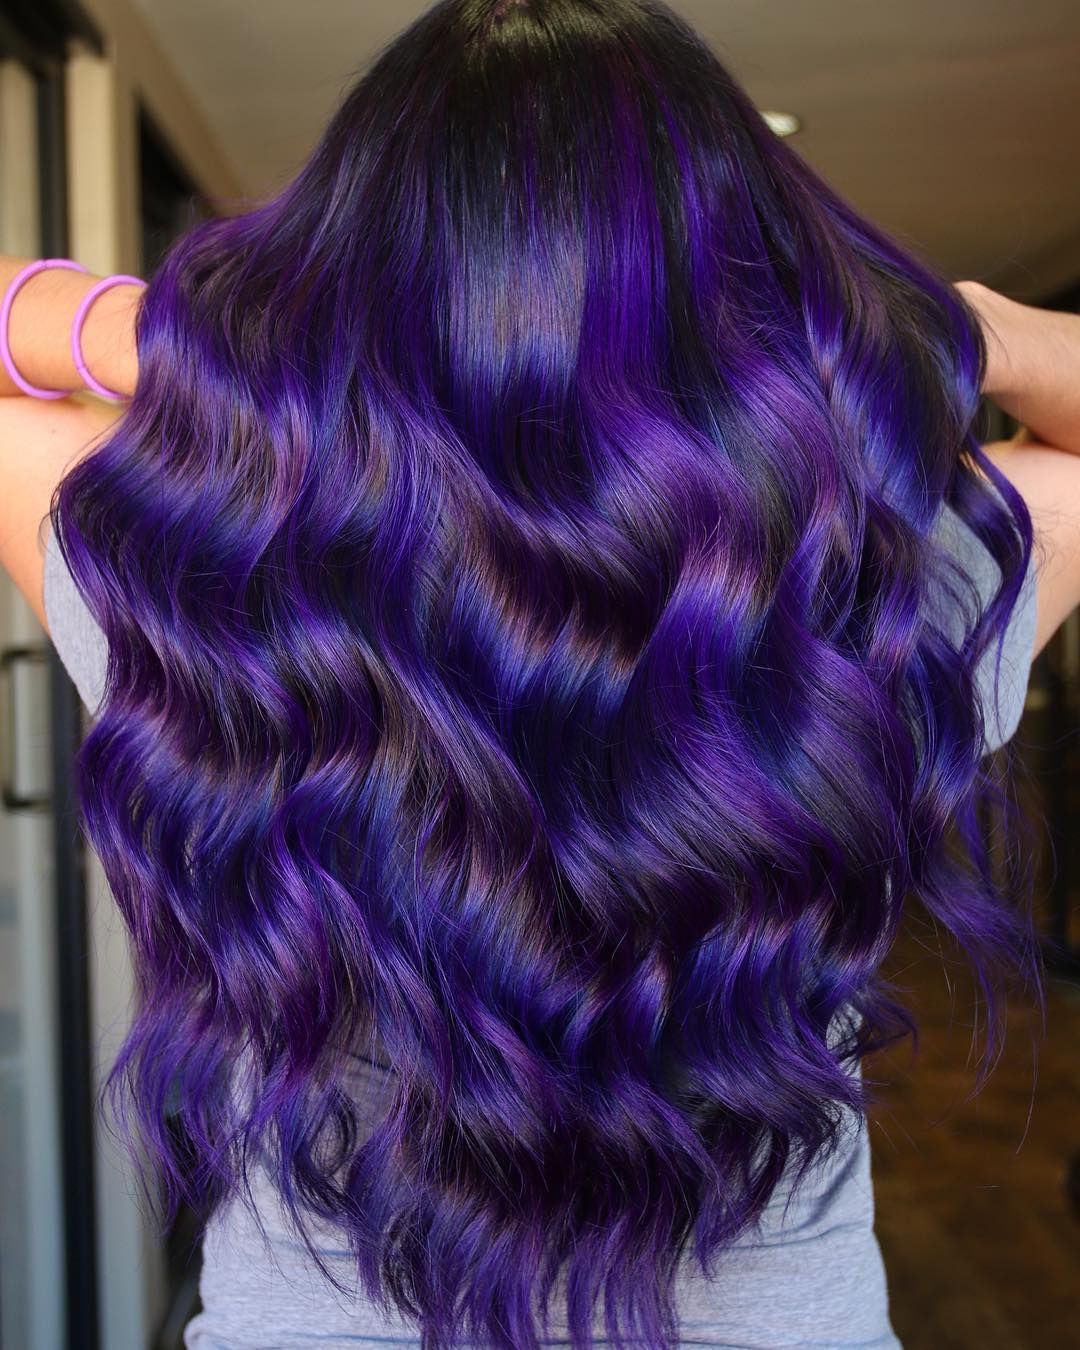 Royal Purple By Matrix Socolorcult Can T Wait Until You Guys Get To See The Rest Of This Amazing Collection Lilac Hair Hair Color Purple Hair Dye Tips